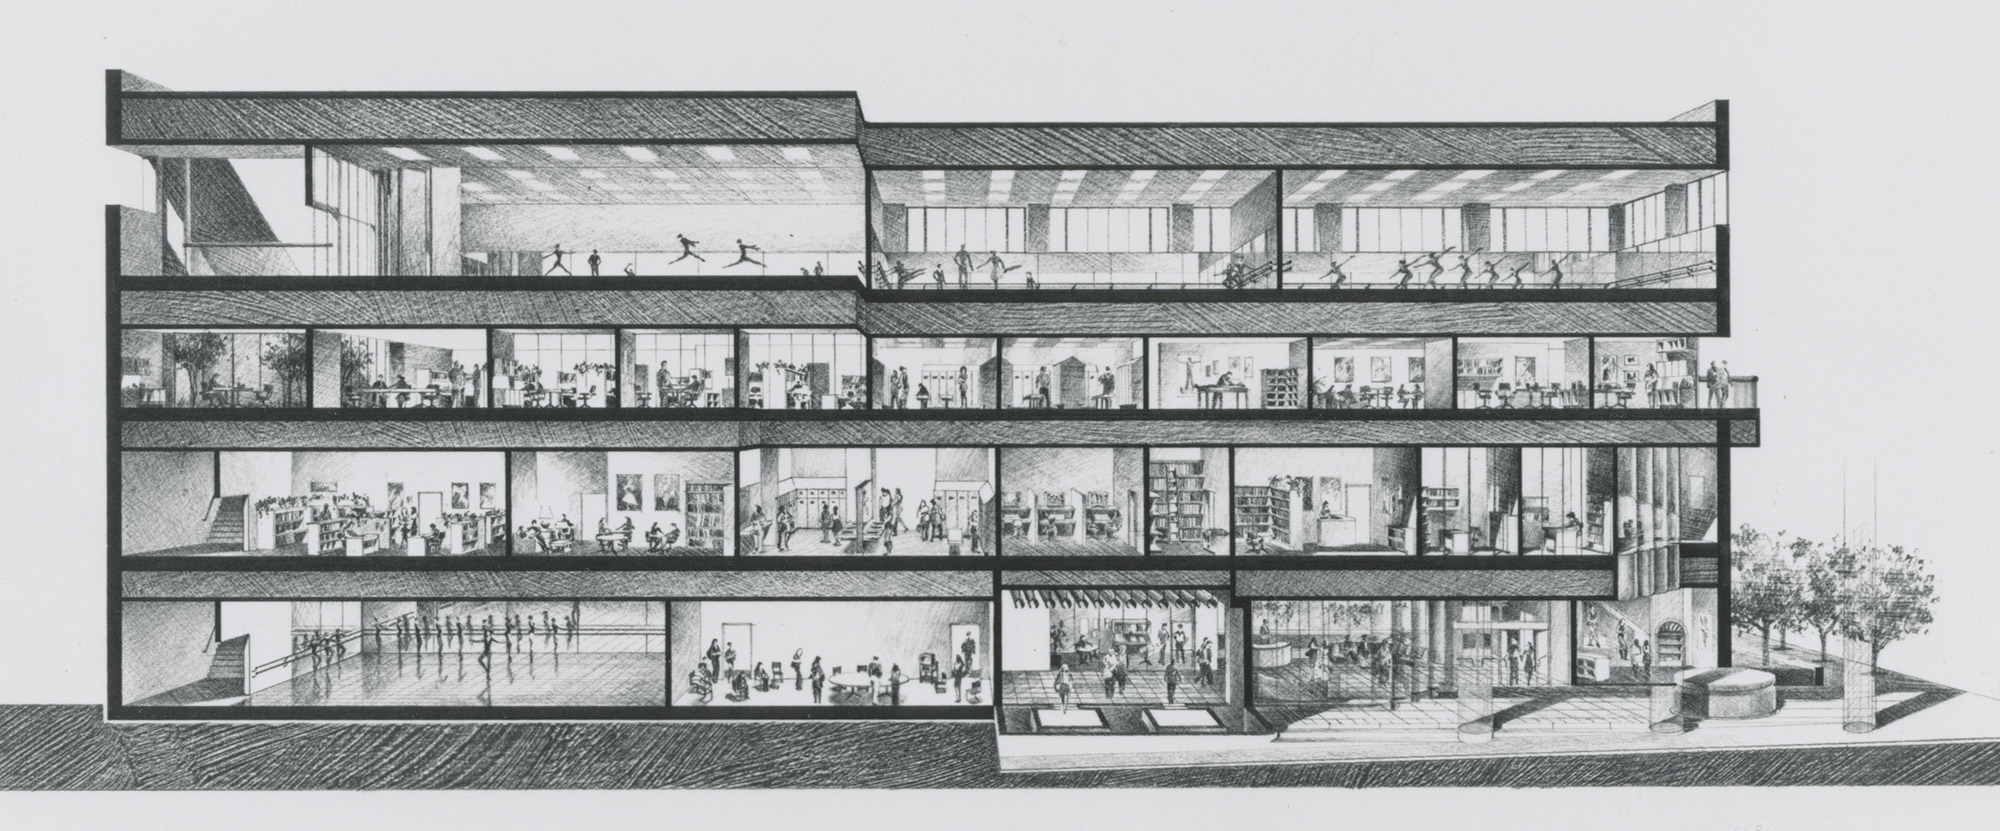 Beverly Willis & Associates, preliminary section showing uses for San Francisco Ballet Building, San Francisco, 1979. Beverly Willis Archive